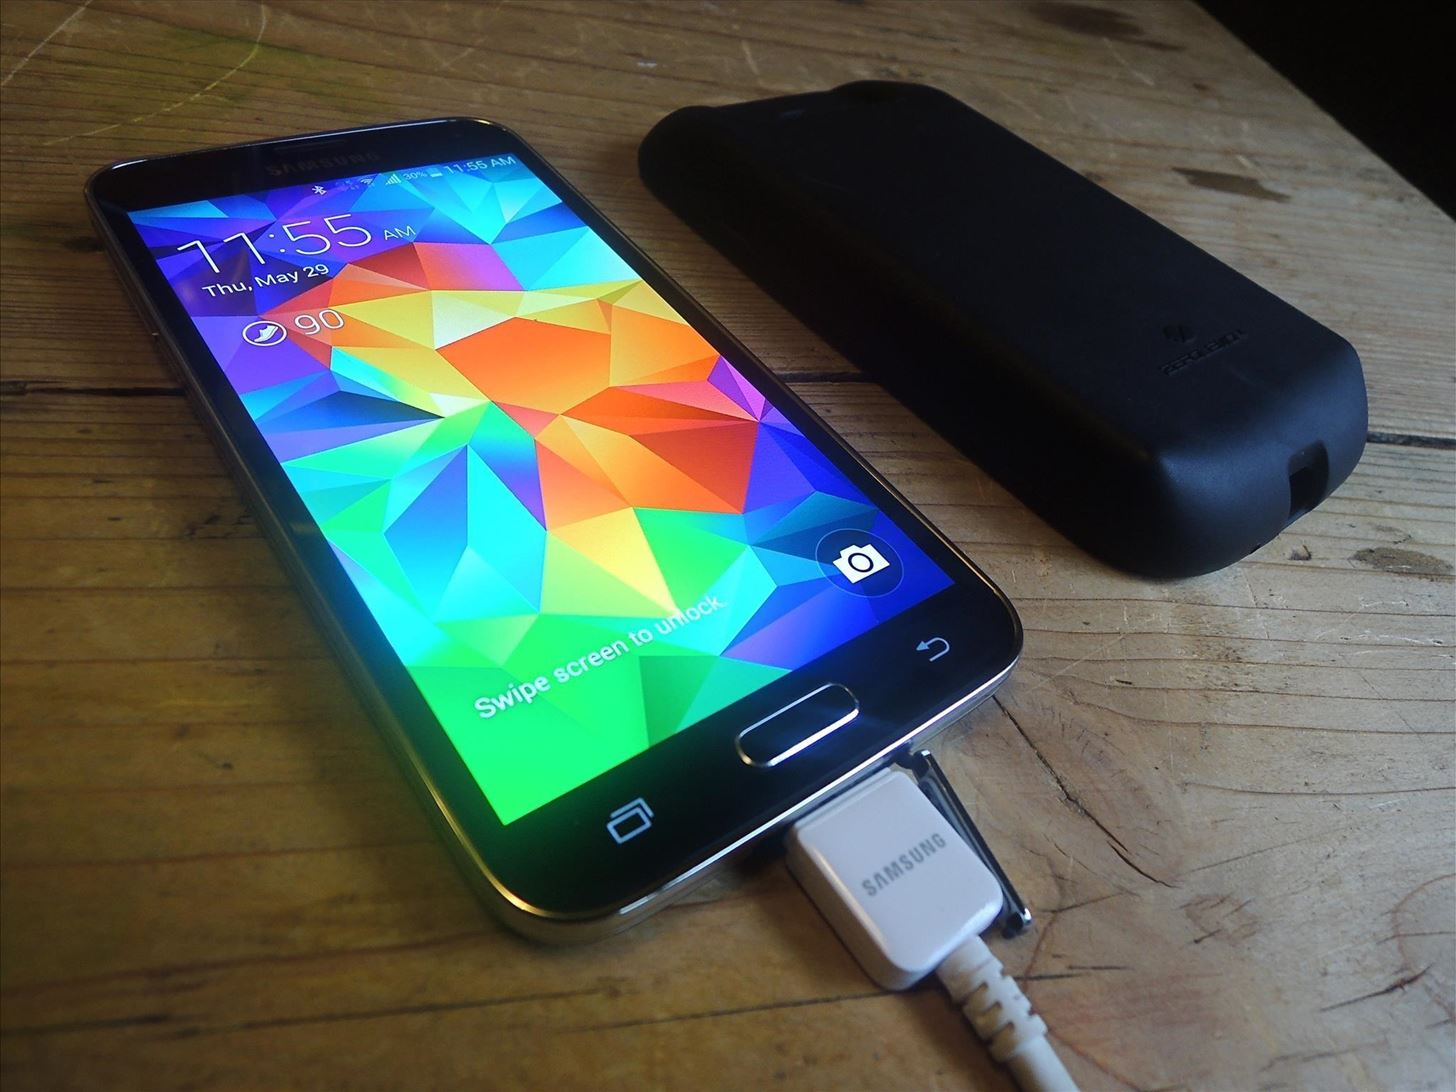 8 Ways to Cool Down & Prevent Your Samsung Galaxy S5 from Overheating